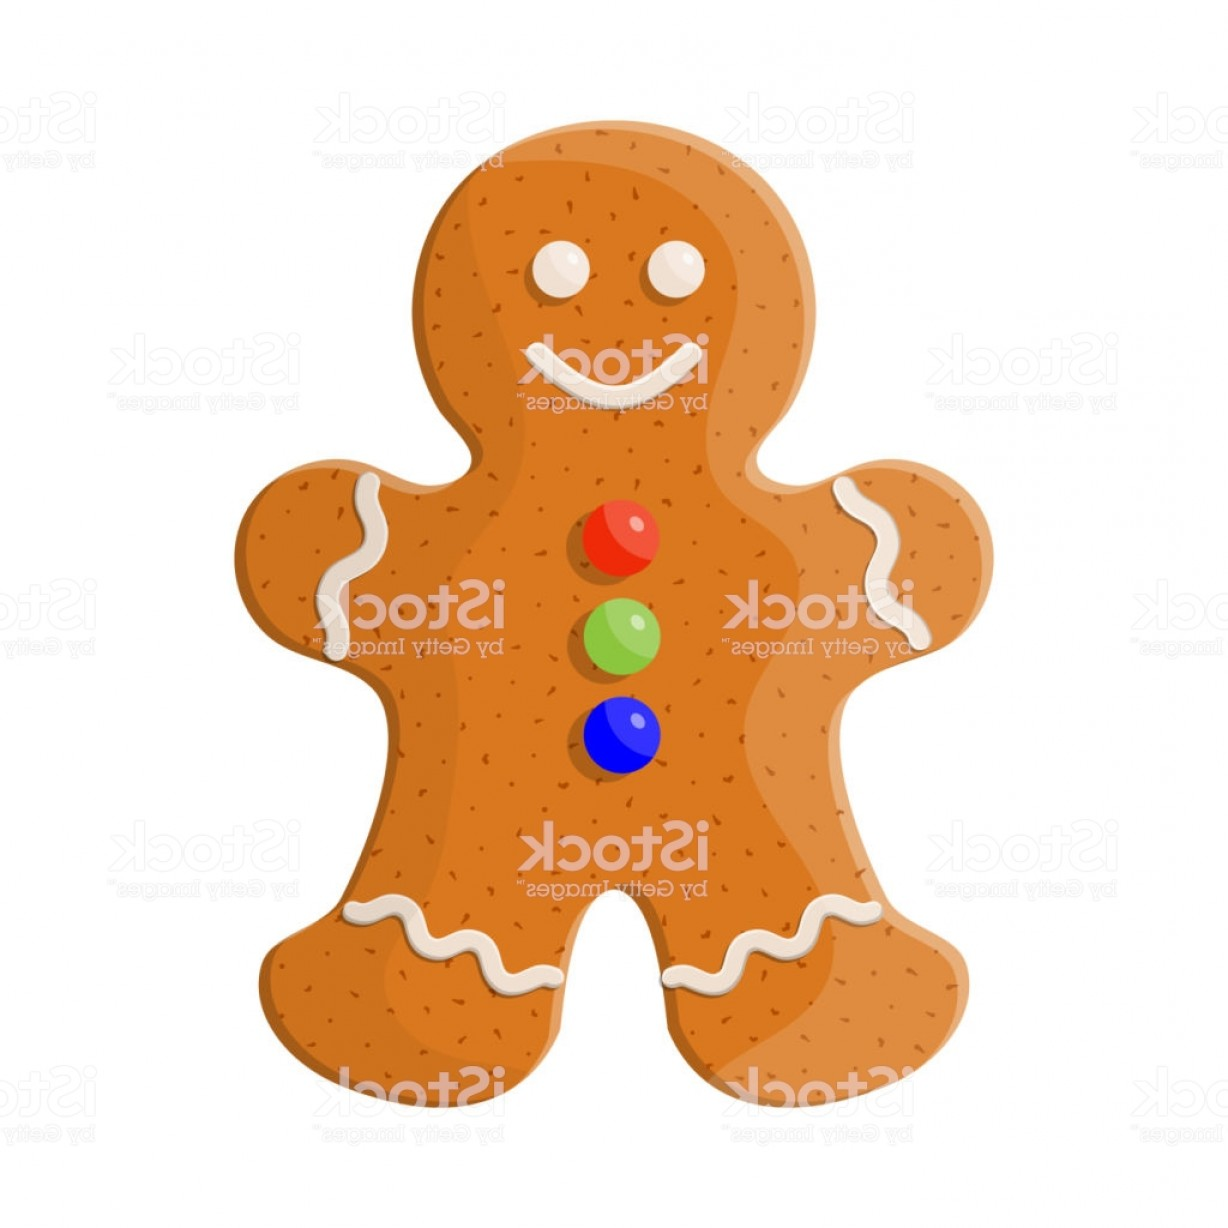 Vectors Holiday Baking: Holiday Gingerbread Man Cookie Gm